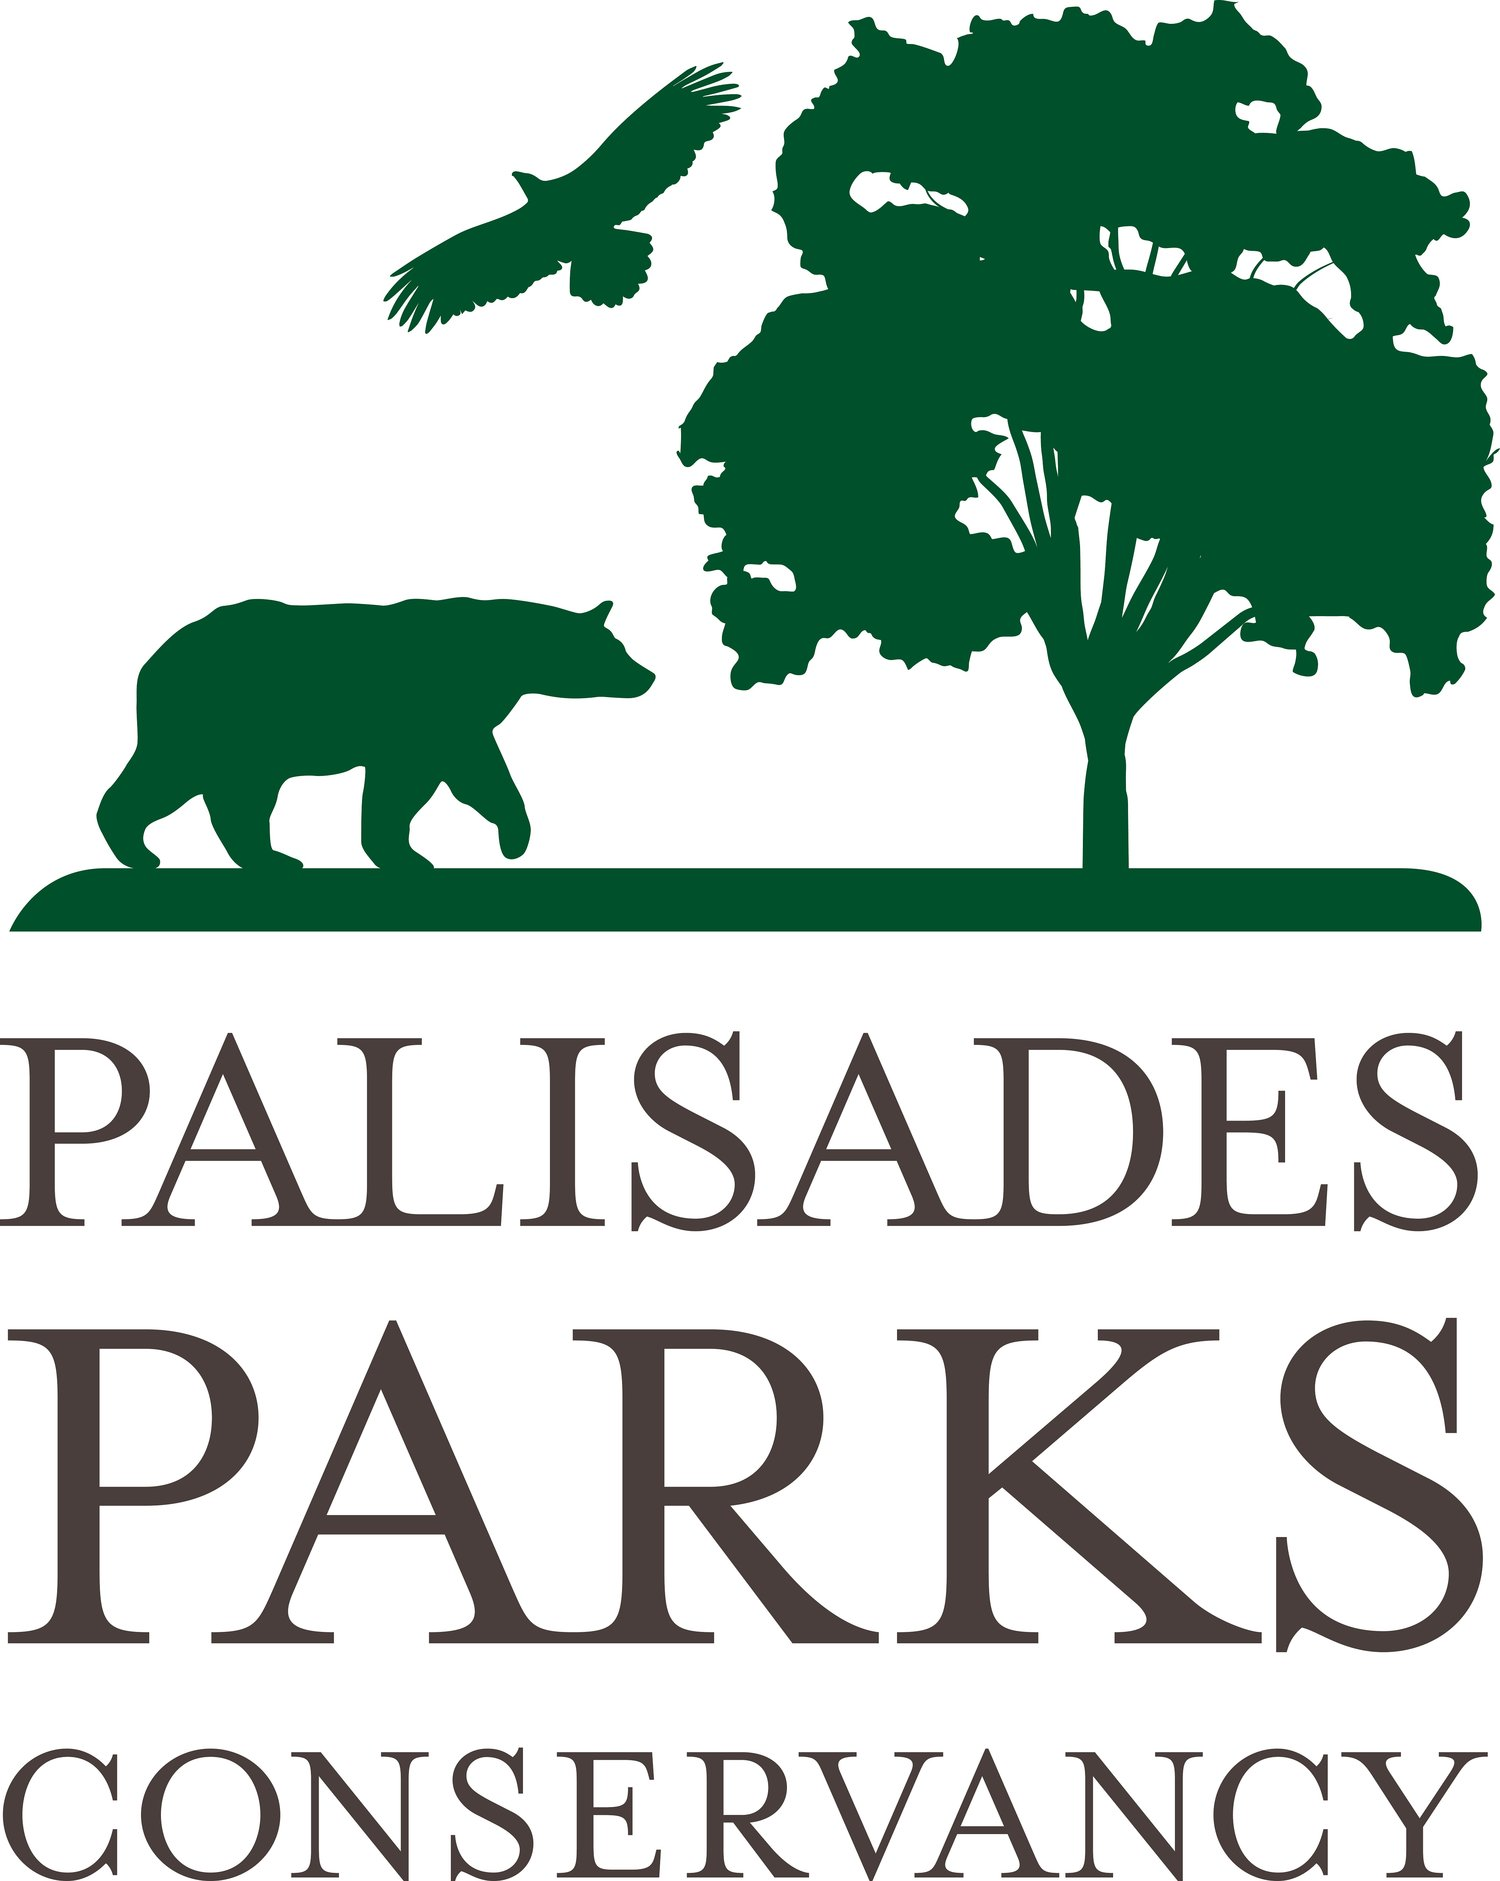 Palisades Parks Conservancy